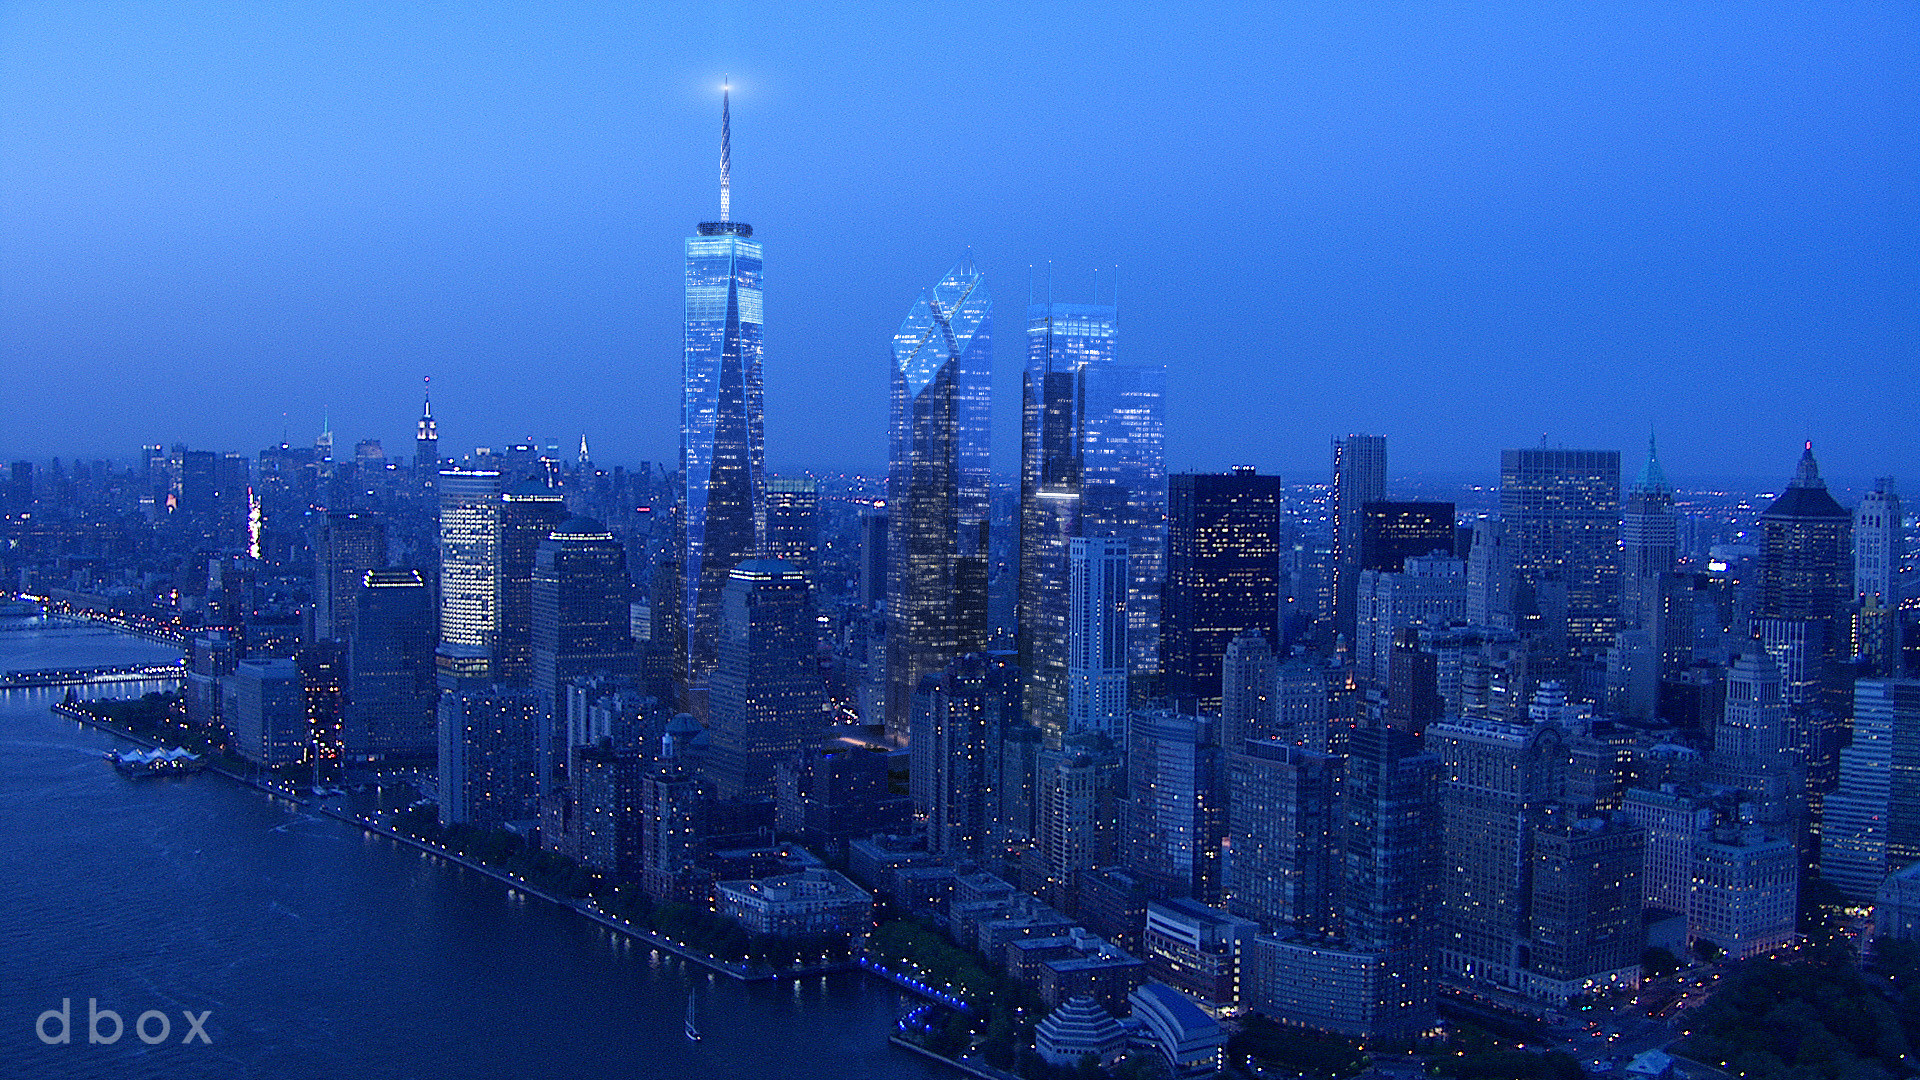 New WTC, rendering by Dbox (its big, sorry)